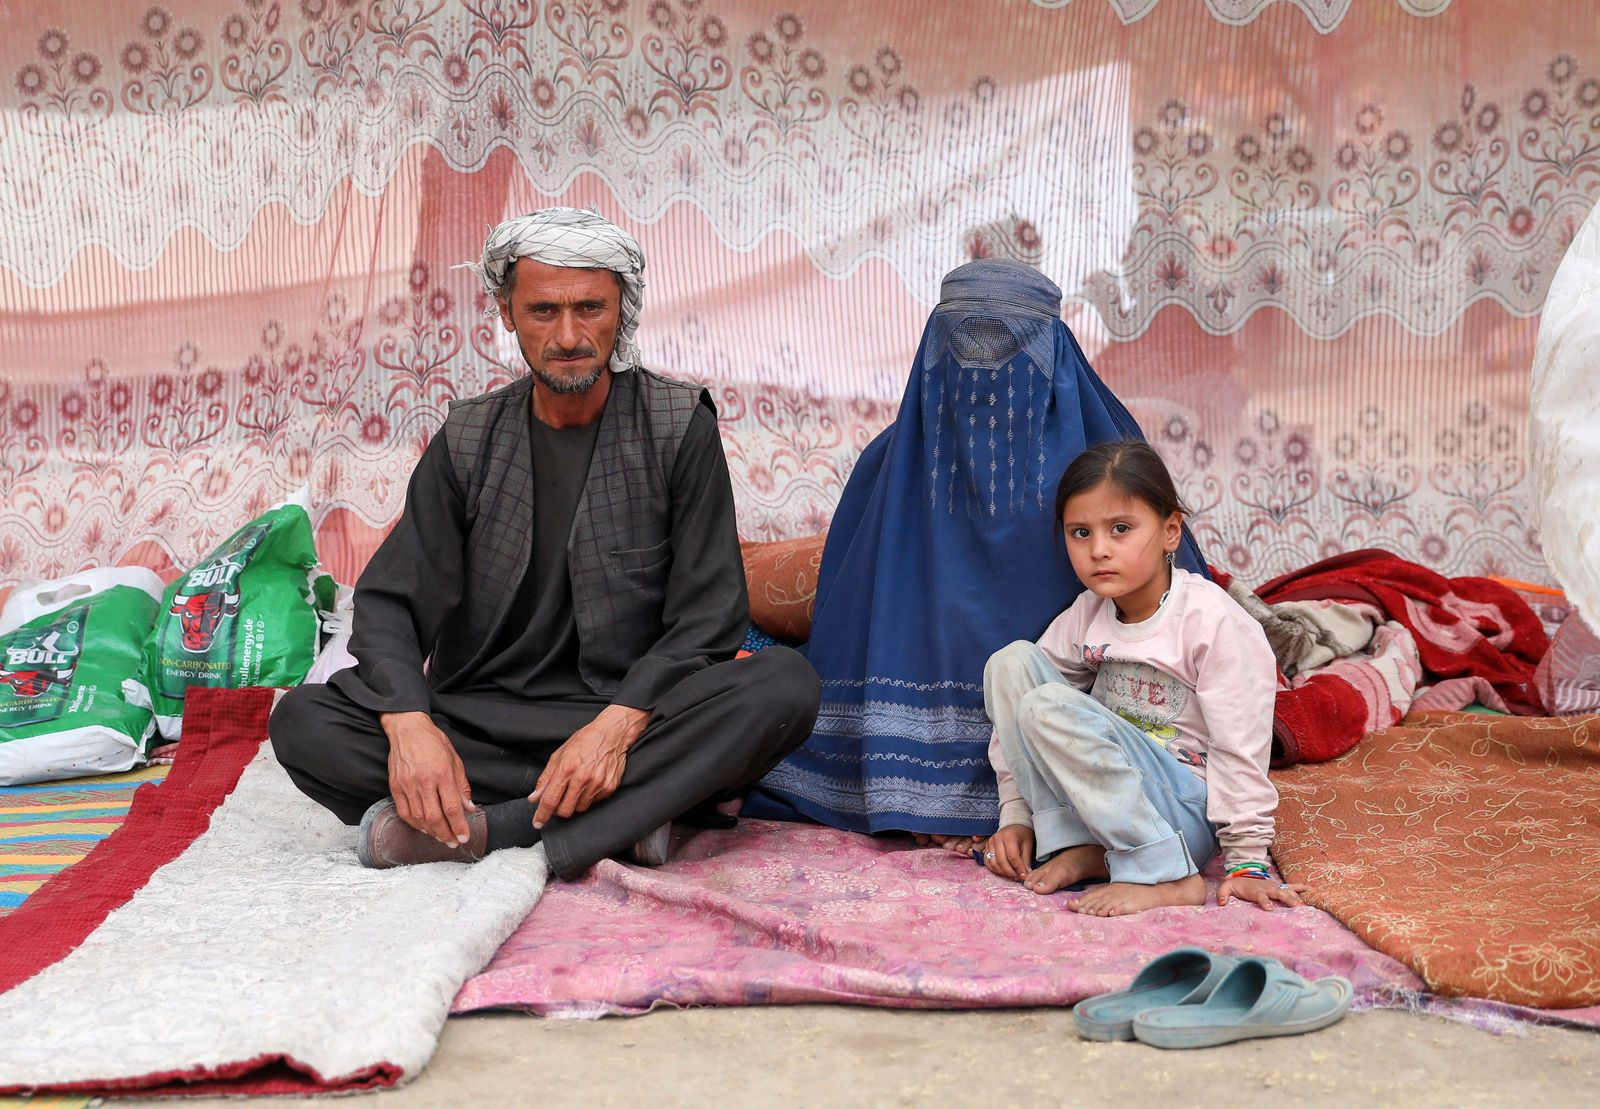 Internally displaced persons camp in Kabul